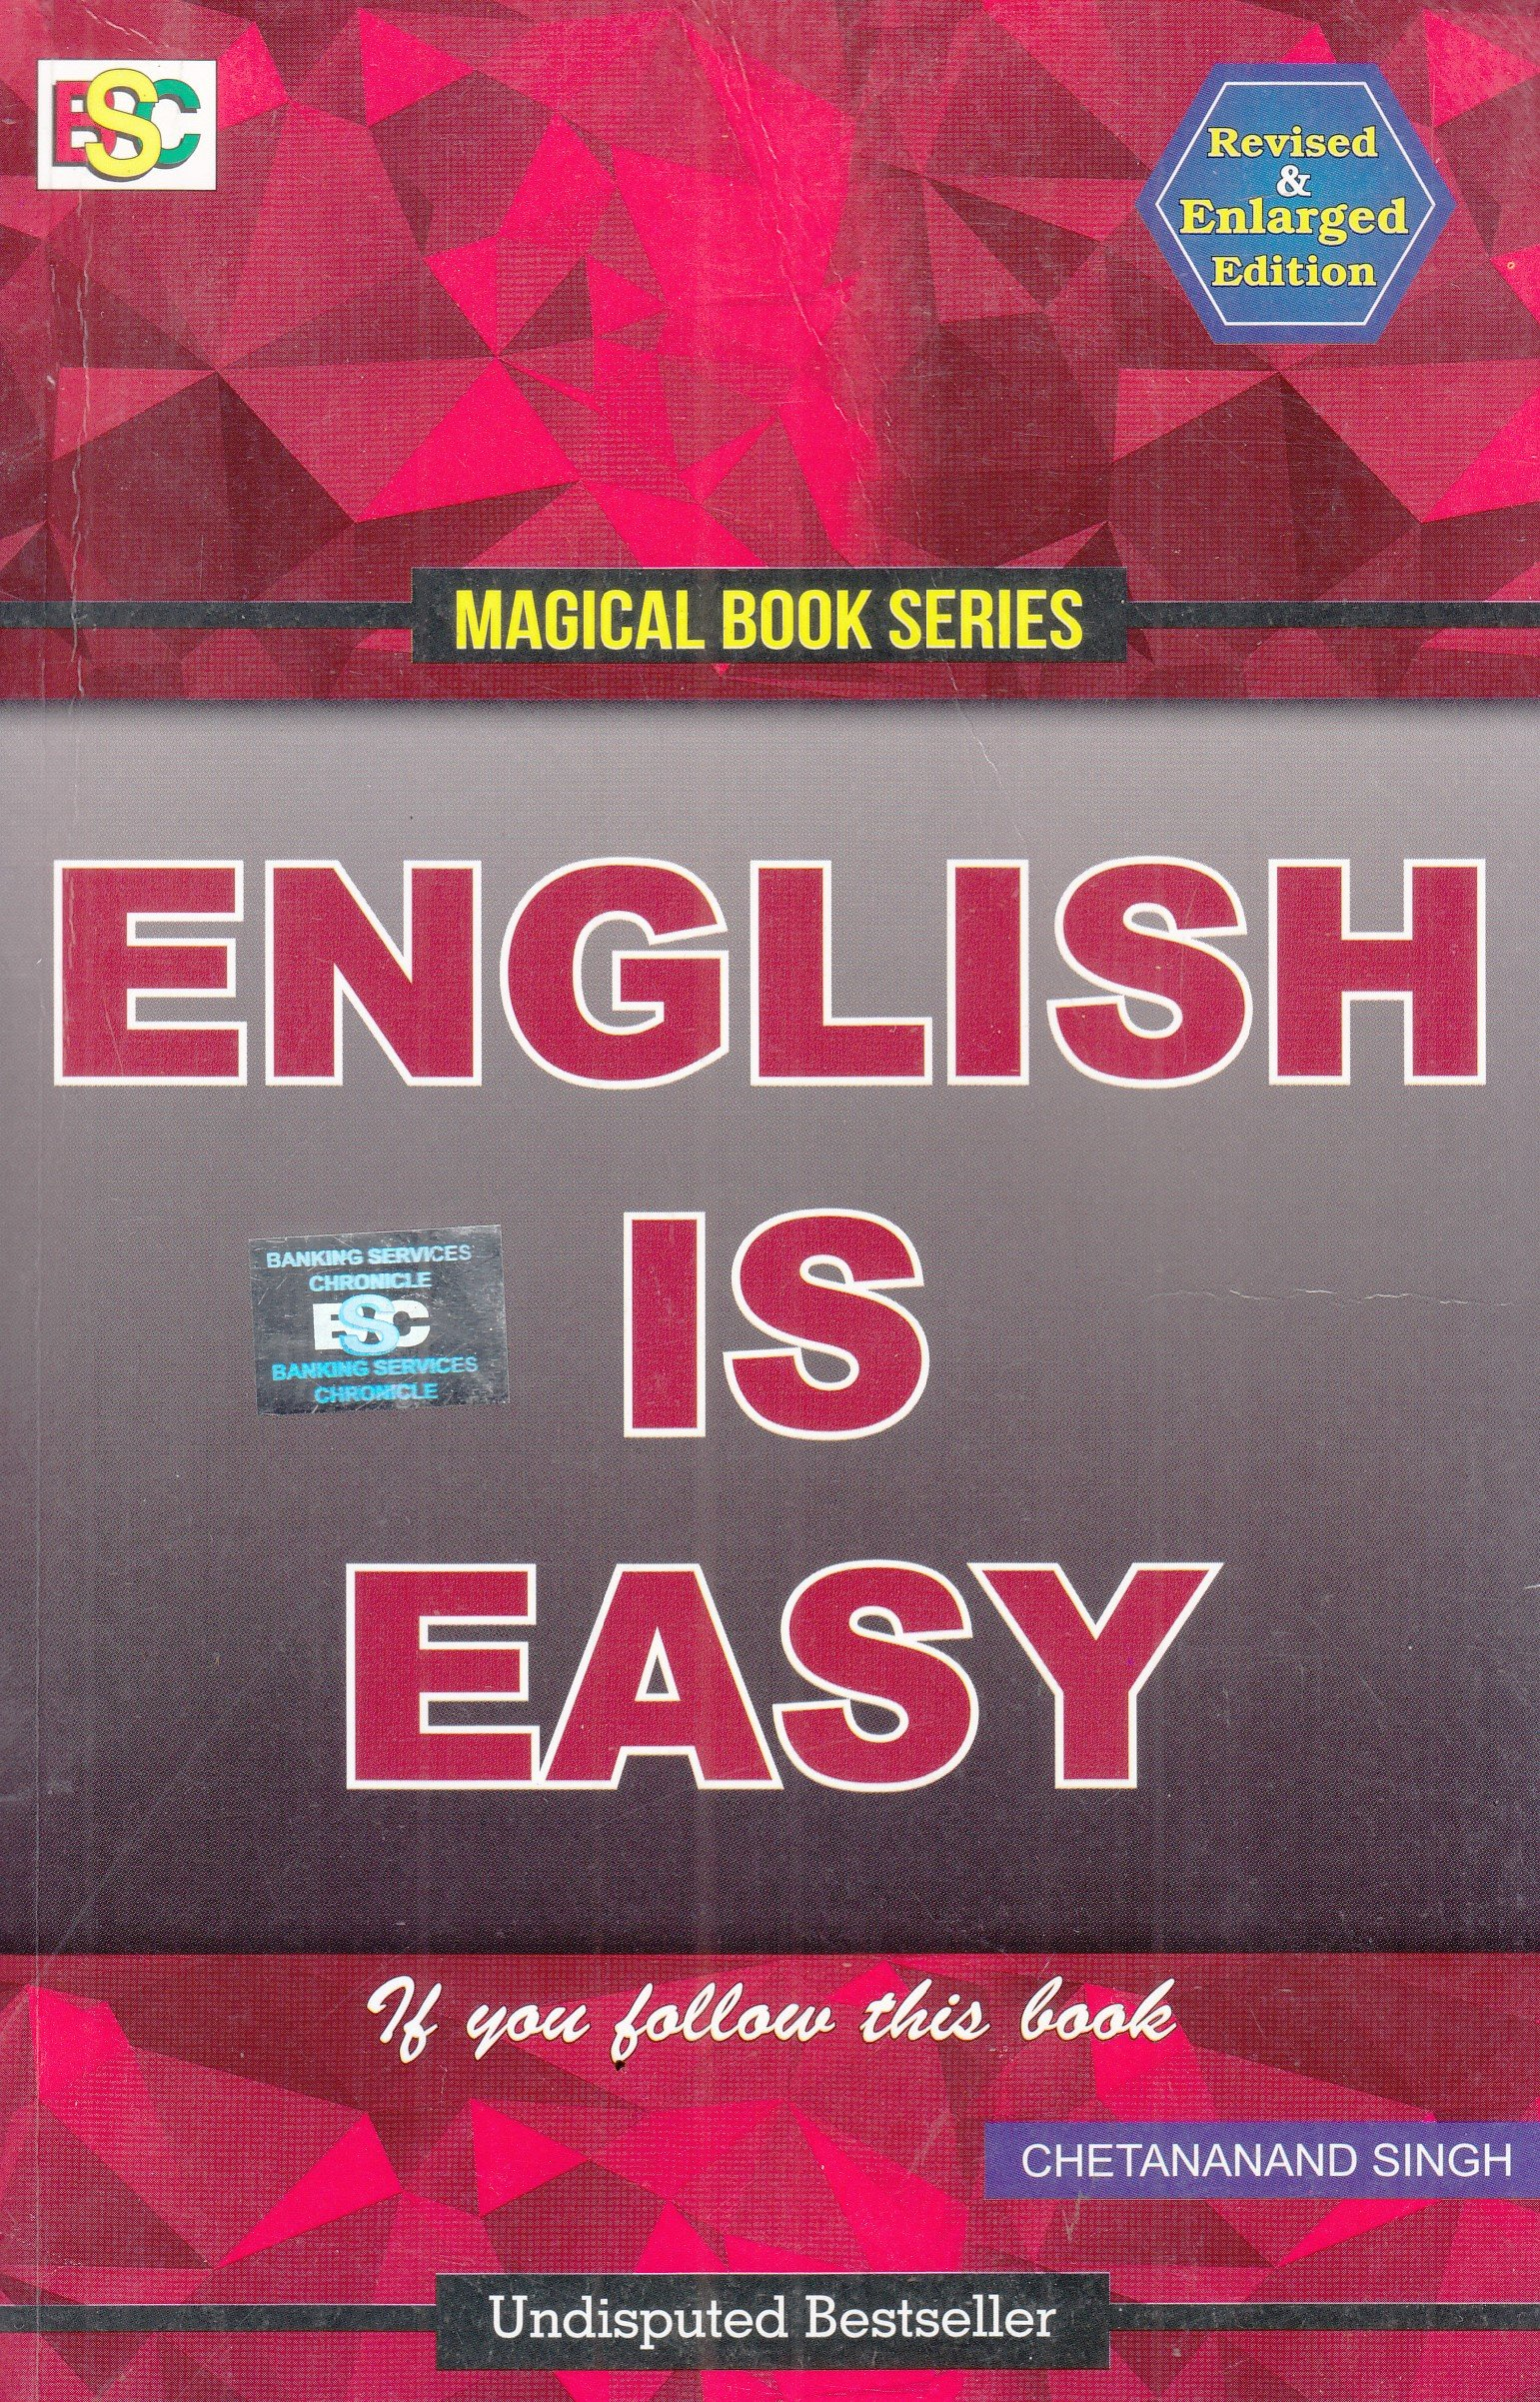 Buy magical book series english is easy 2018 2019 book online at buy magical book series english is easy 2018 2019 book online at low prices in india magical book series english is easy 2018 2019 reviews ratings fandeluxe Gallery